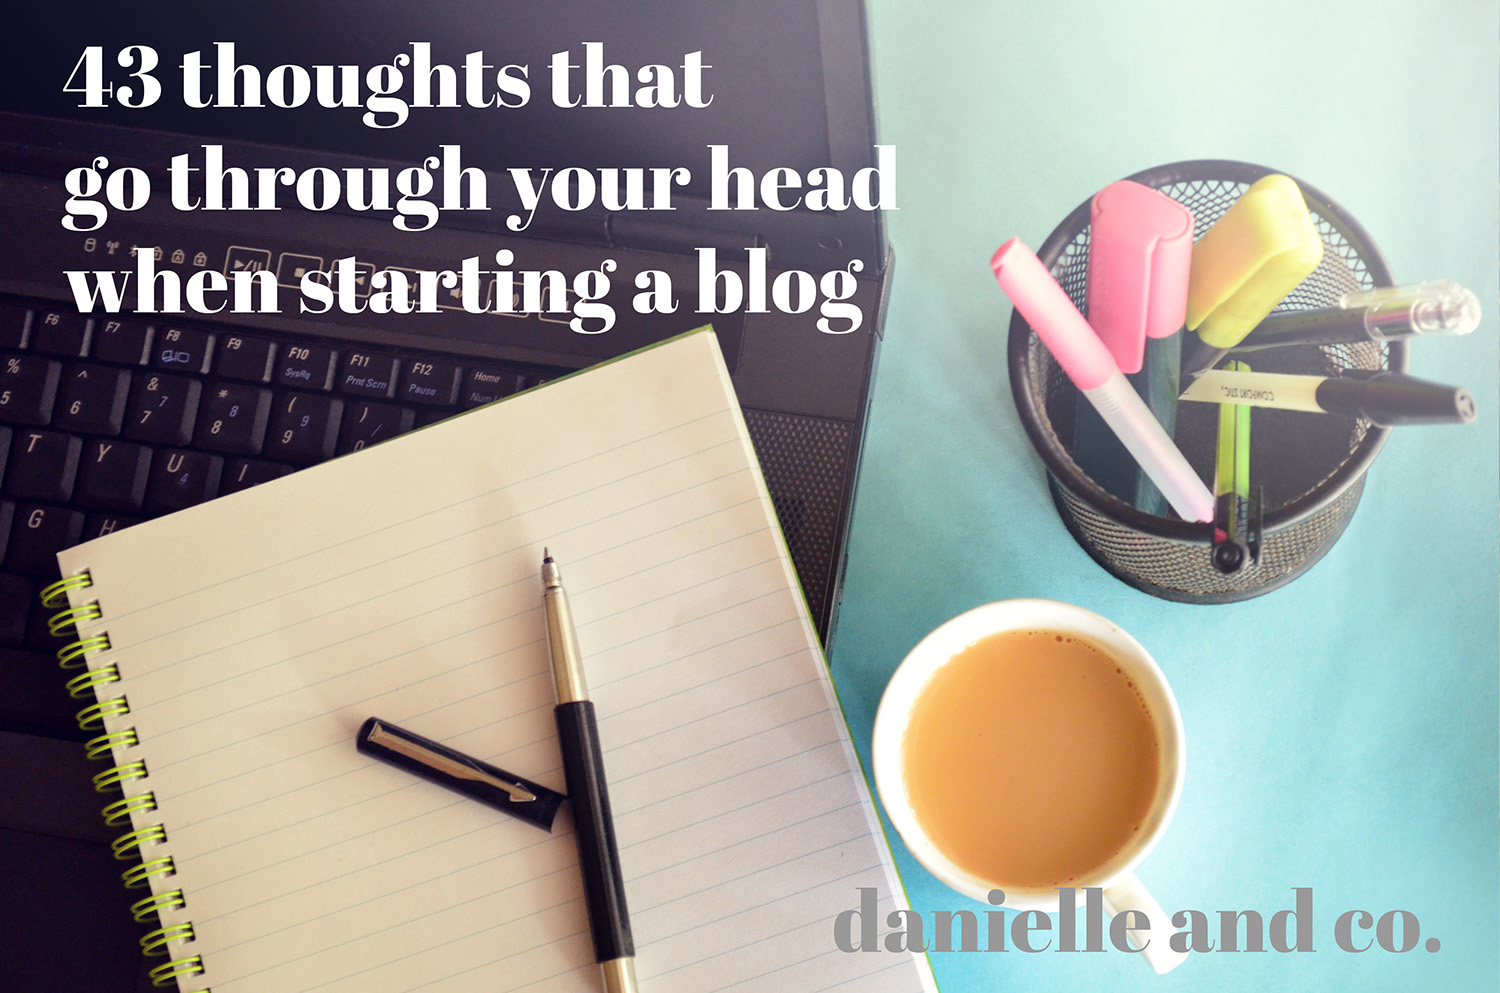 43 thoughts that go through your head when starting a blog. - danielleandco.com